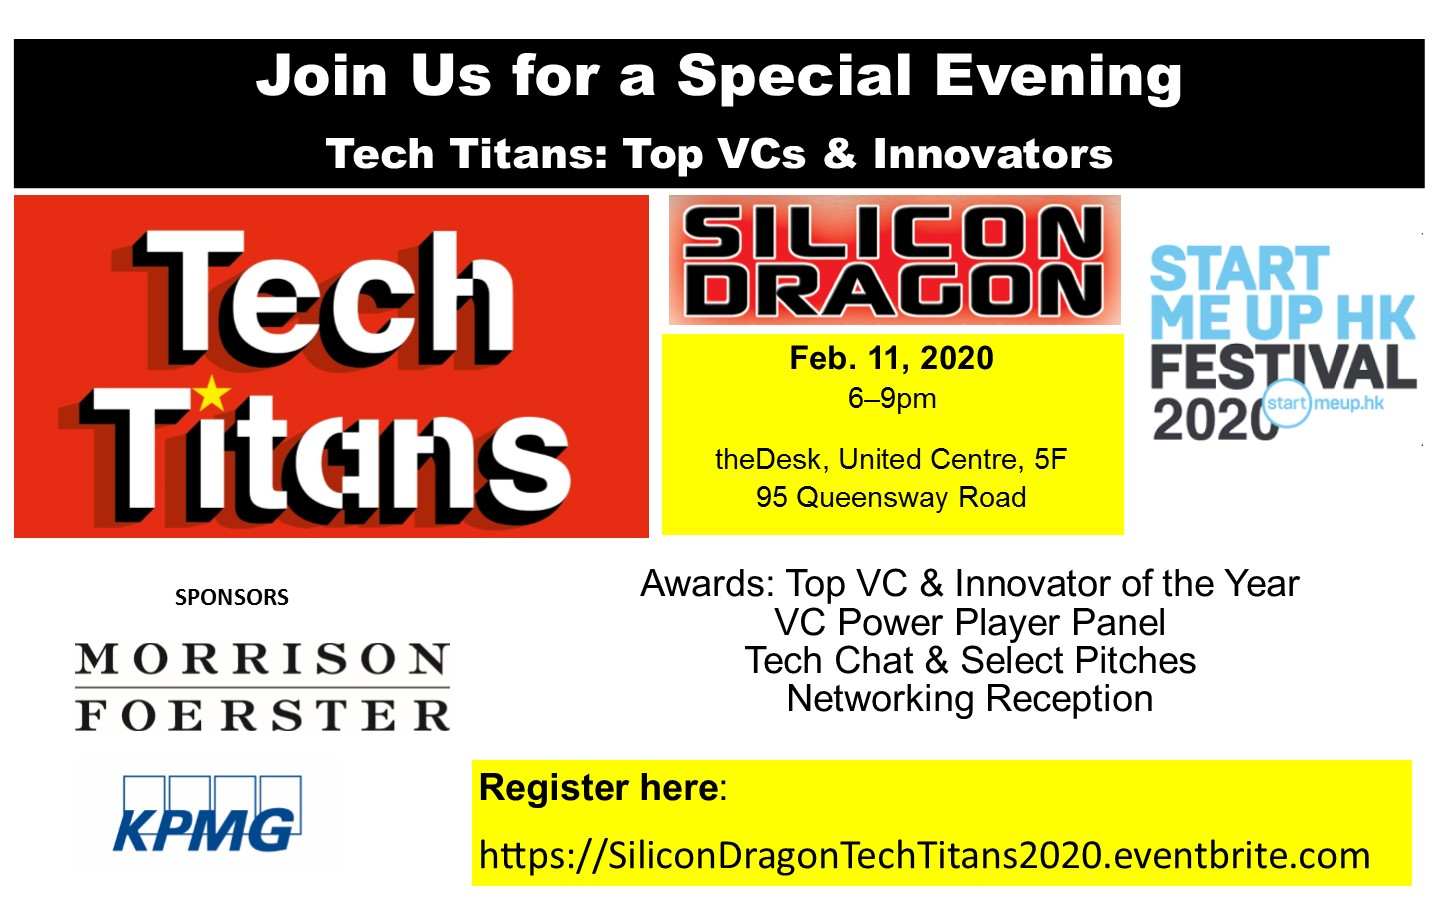 Silicon Dragon Tech Titans 2020 @ Hong Kong